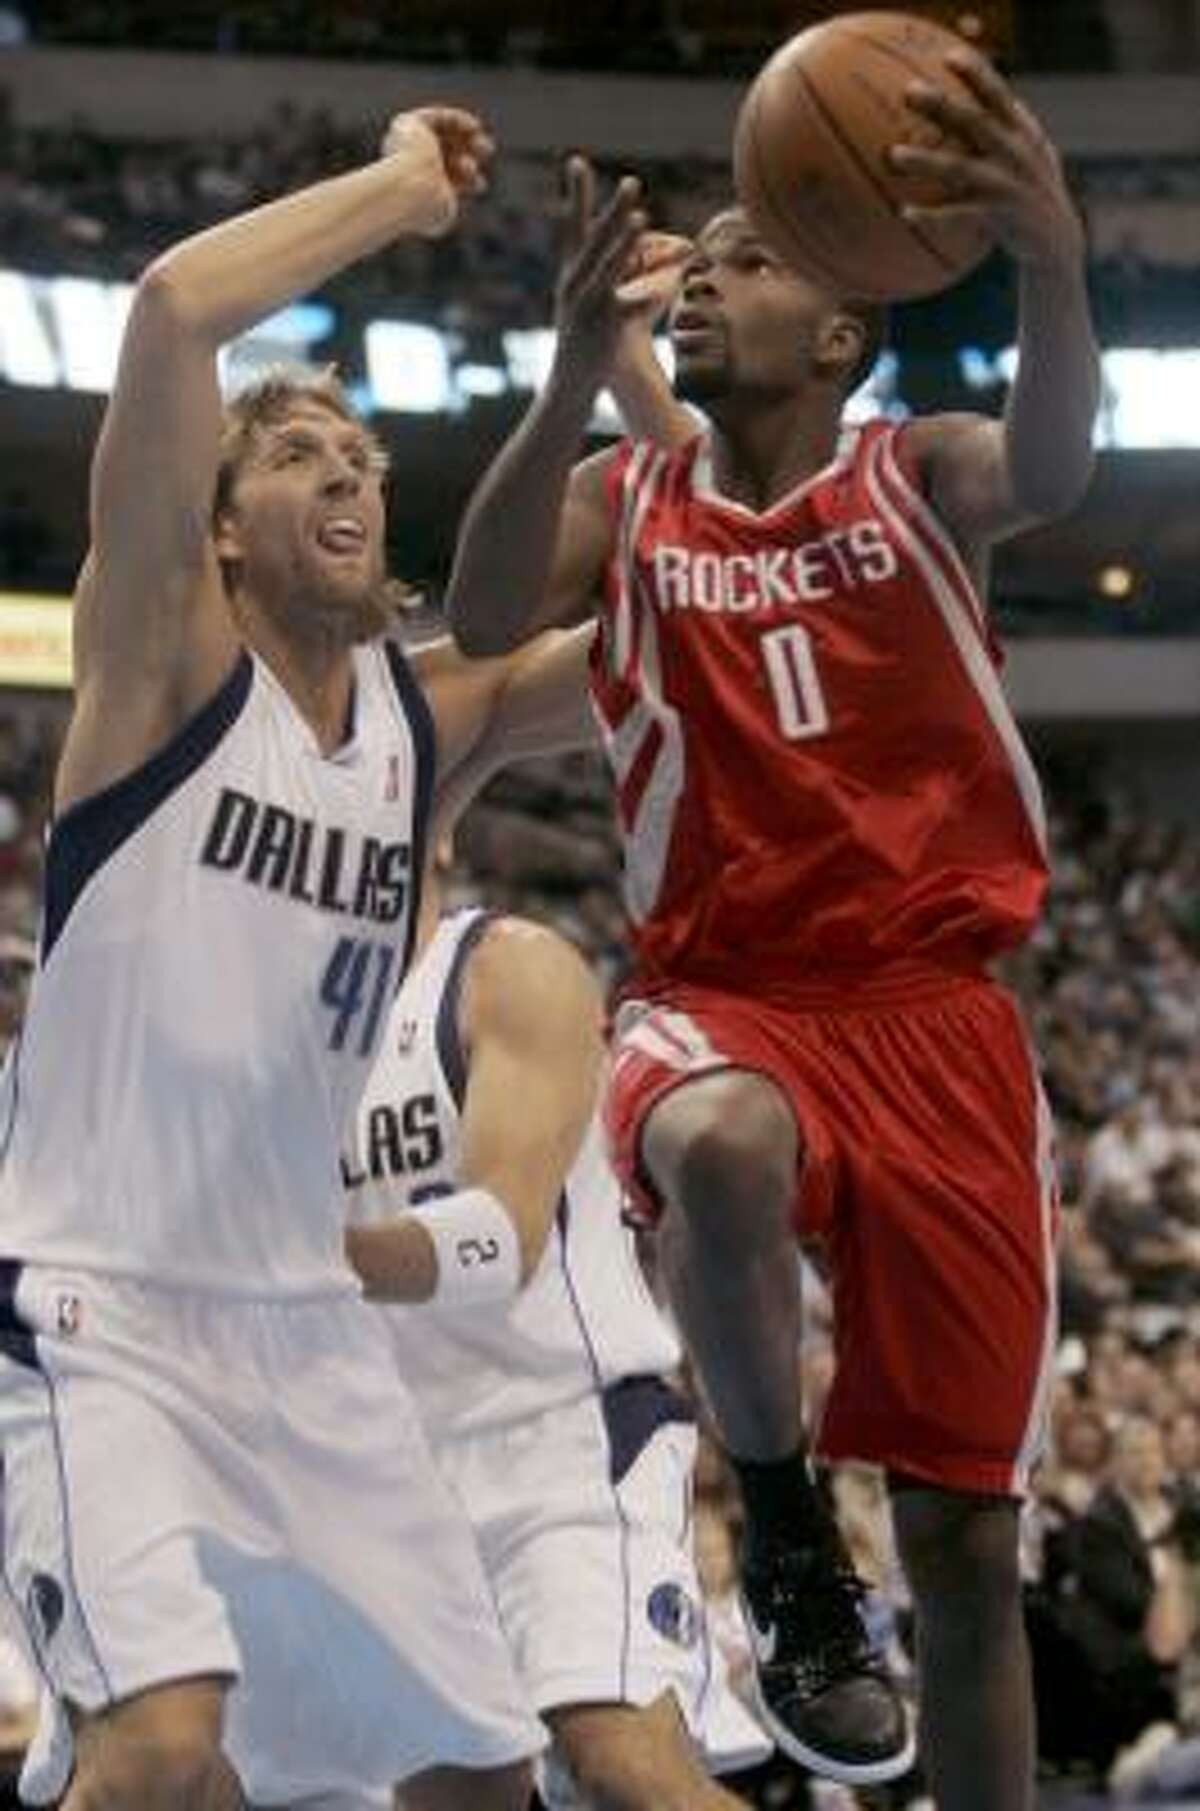 Rockets guard Aaron Brooks goes for a shot against Mavericks forward Dirk Nowitzki in the first quarter.